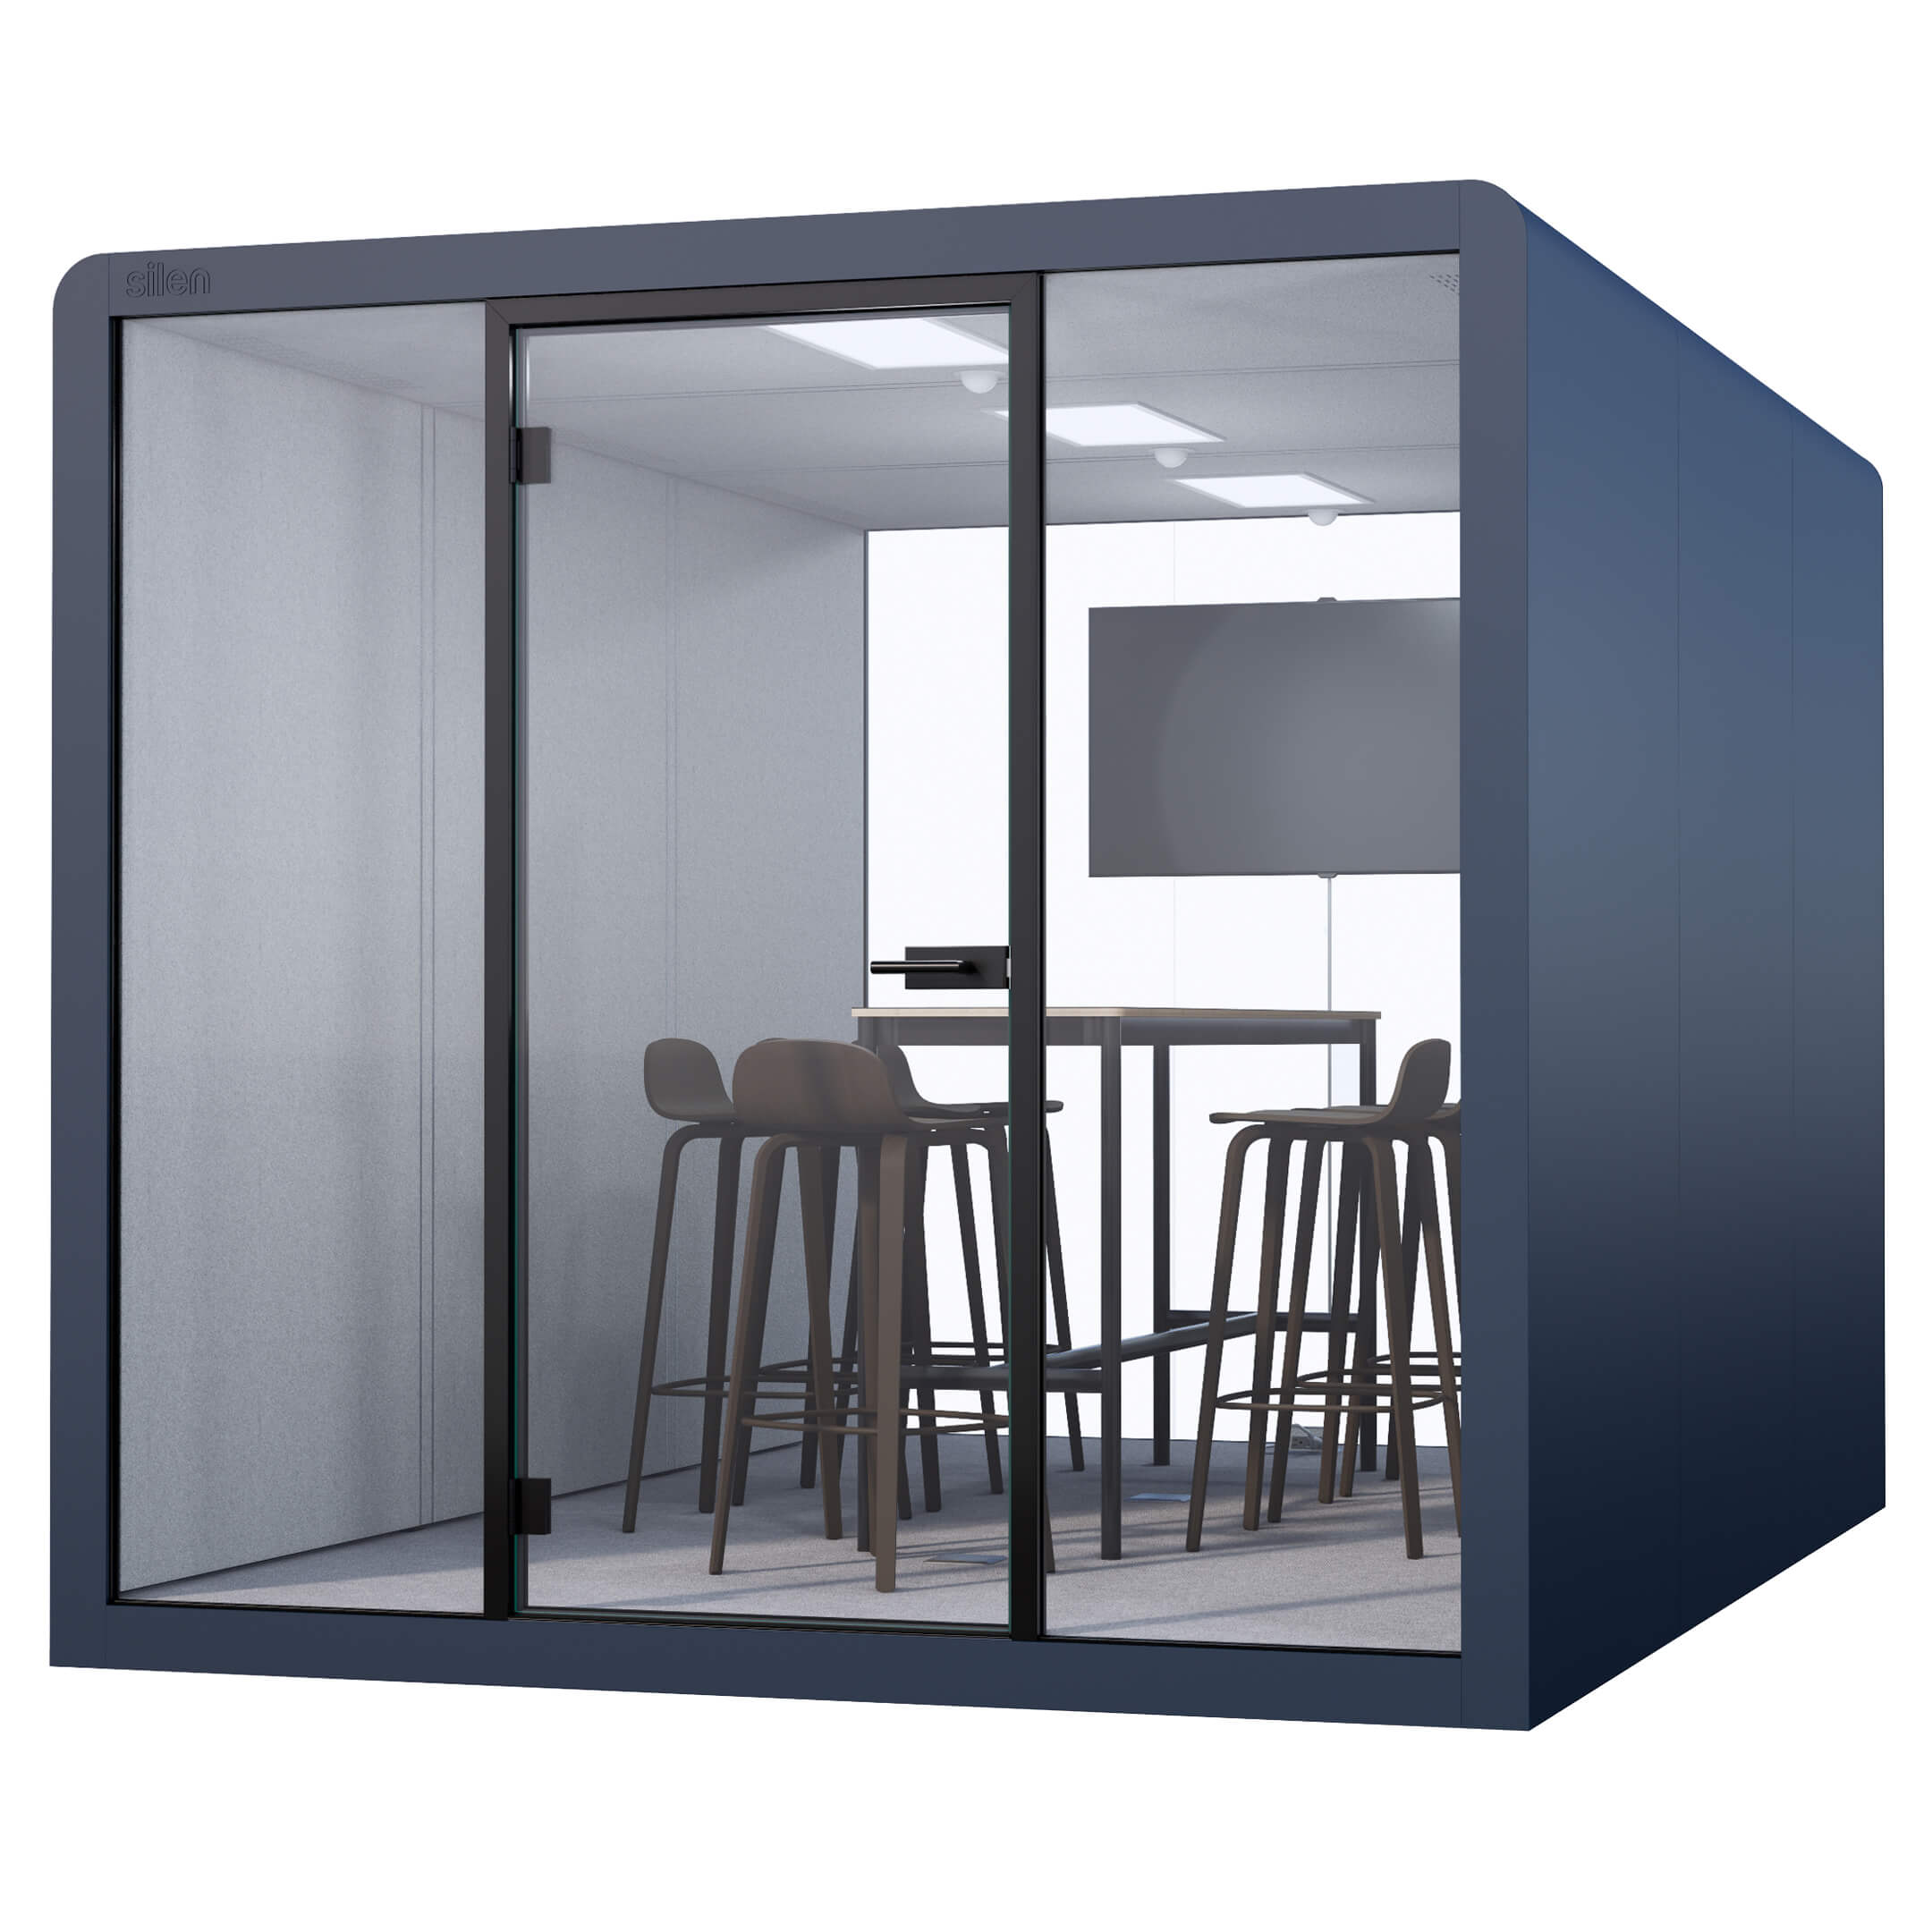 AZURITE SPACE 6 - VIDEO CONFERENCING ROOM